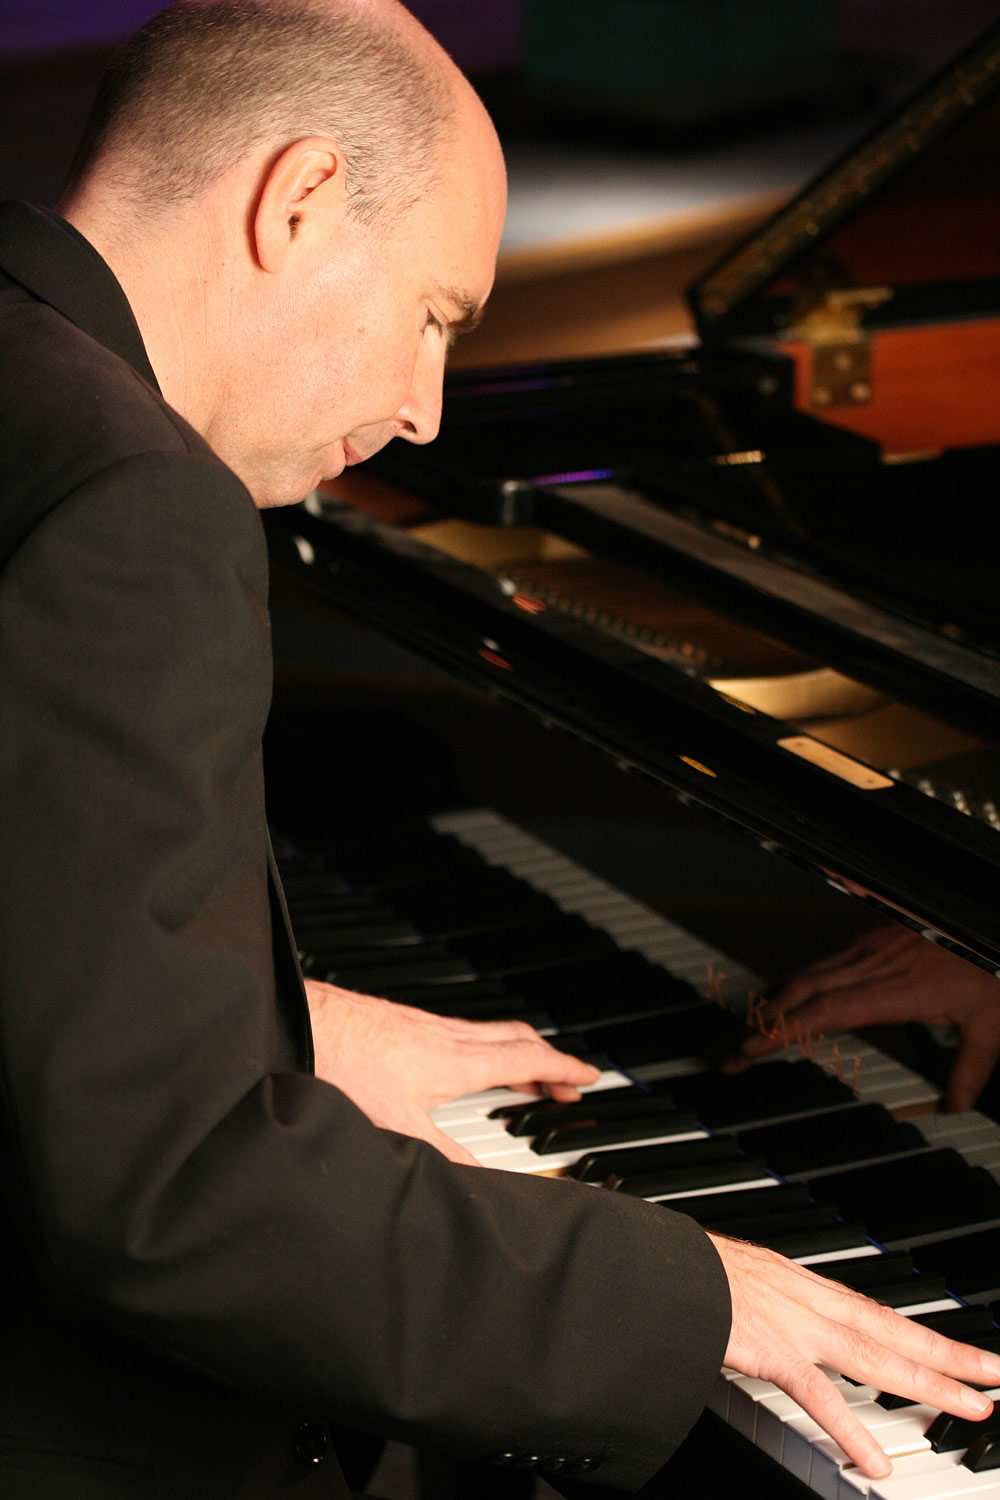 Promo Gary Davies Pianist Newcastle under Lyme, Staffordshire